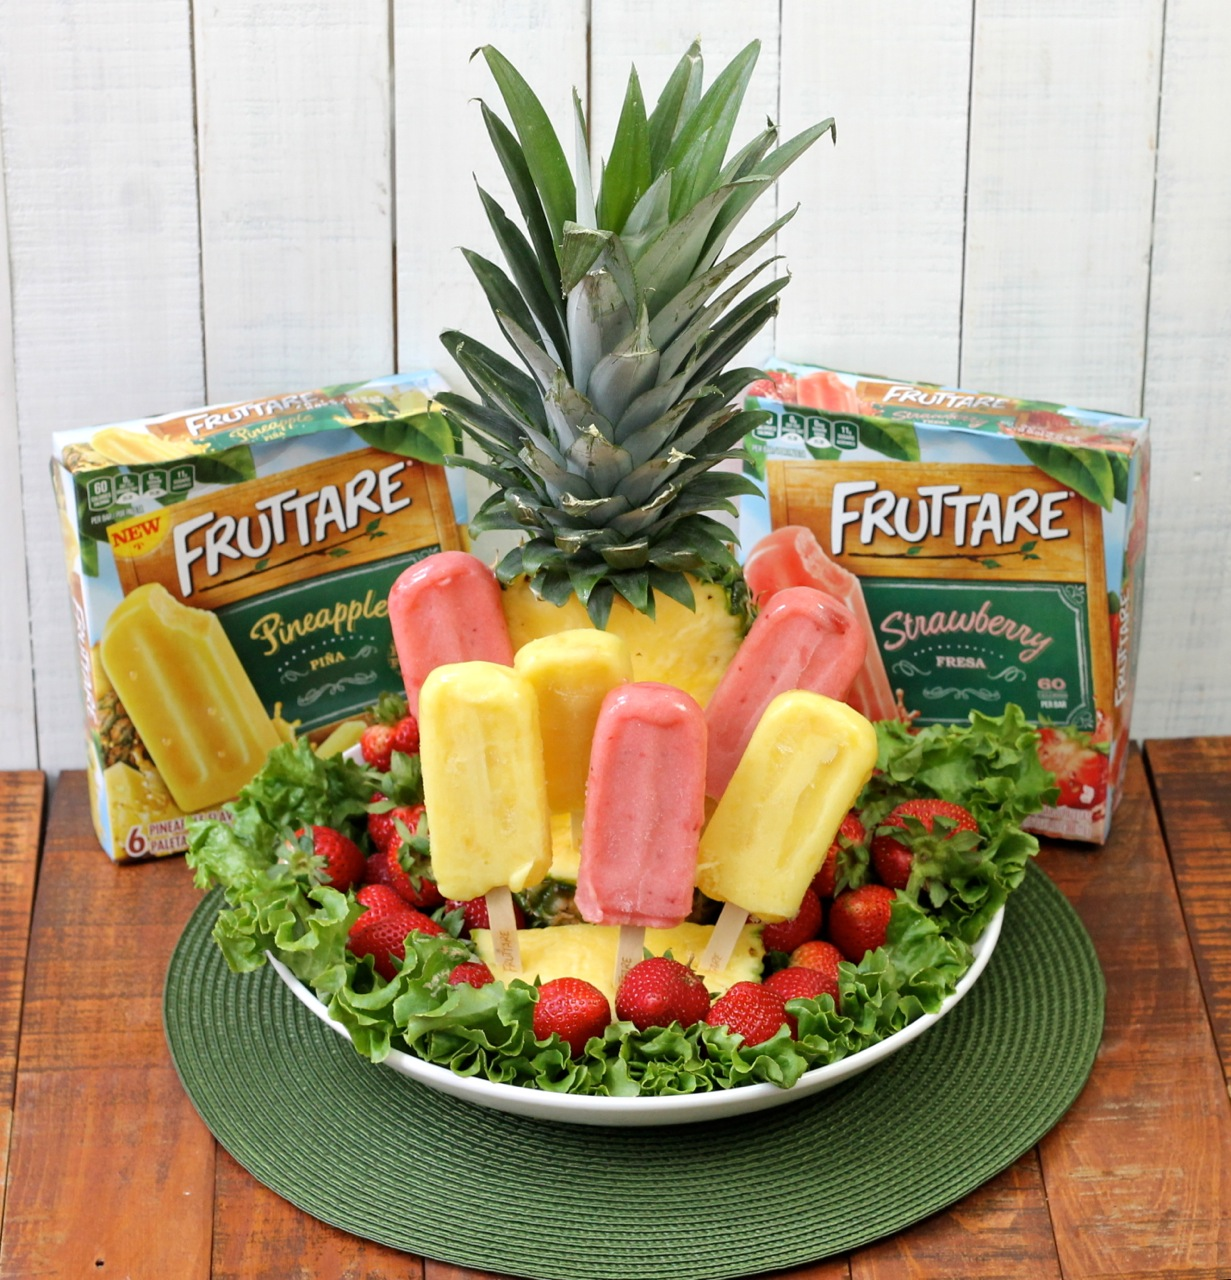 Pineapple Centerpiece with Fruttare photo copyright 2015 HappyandBlessedHome